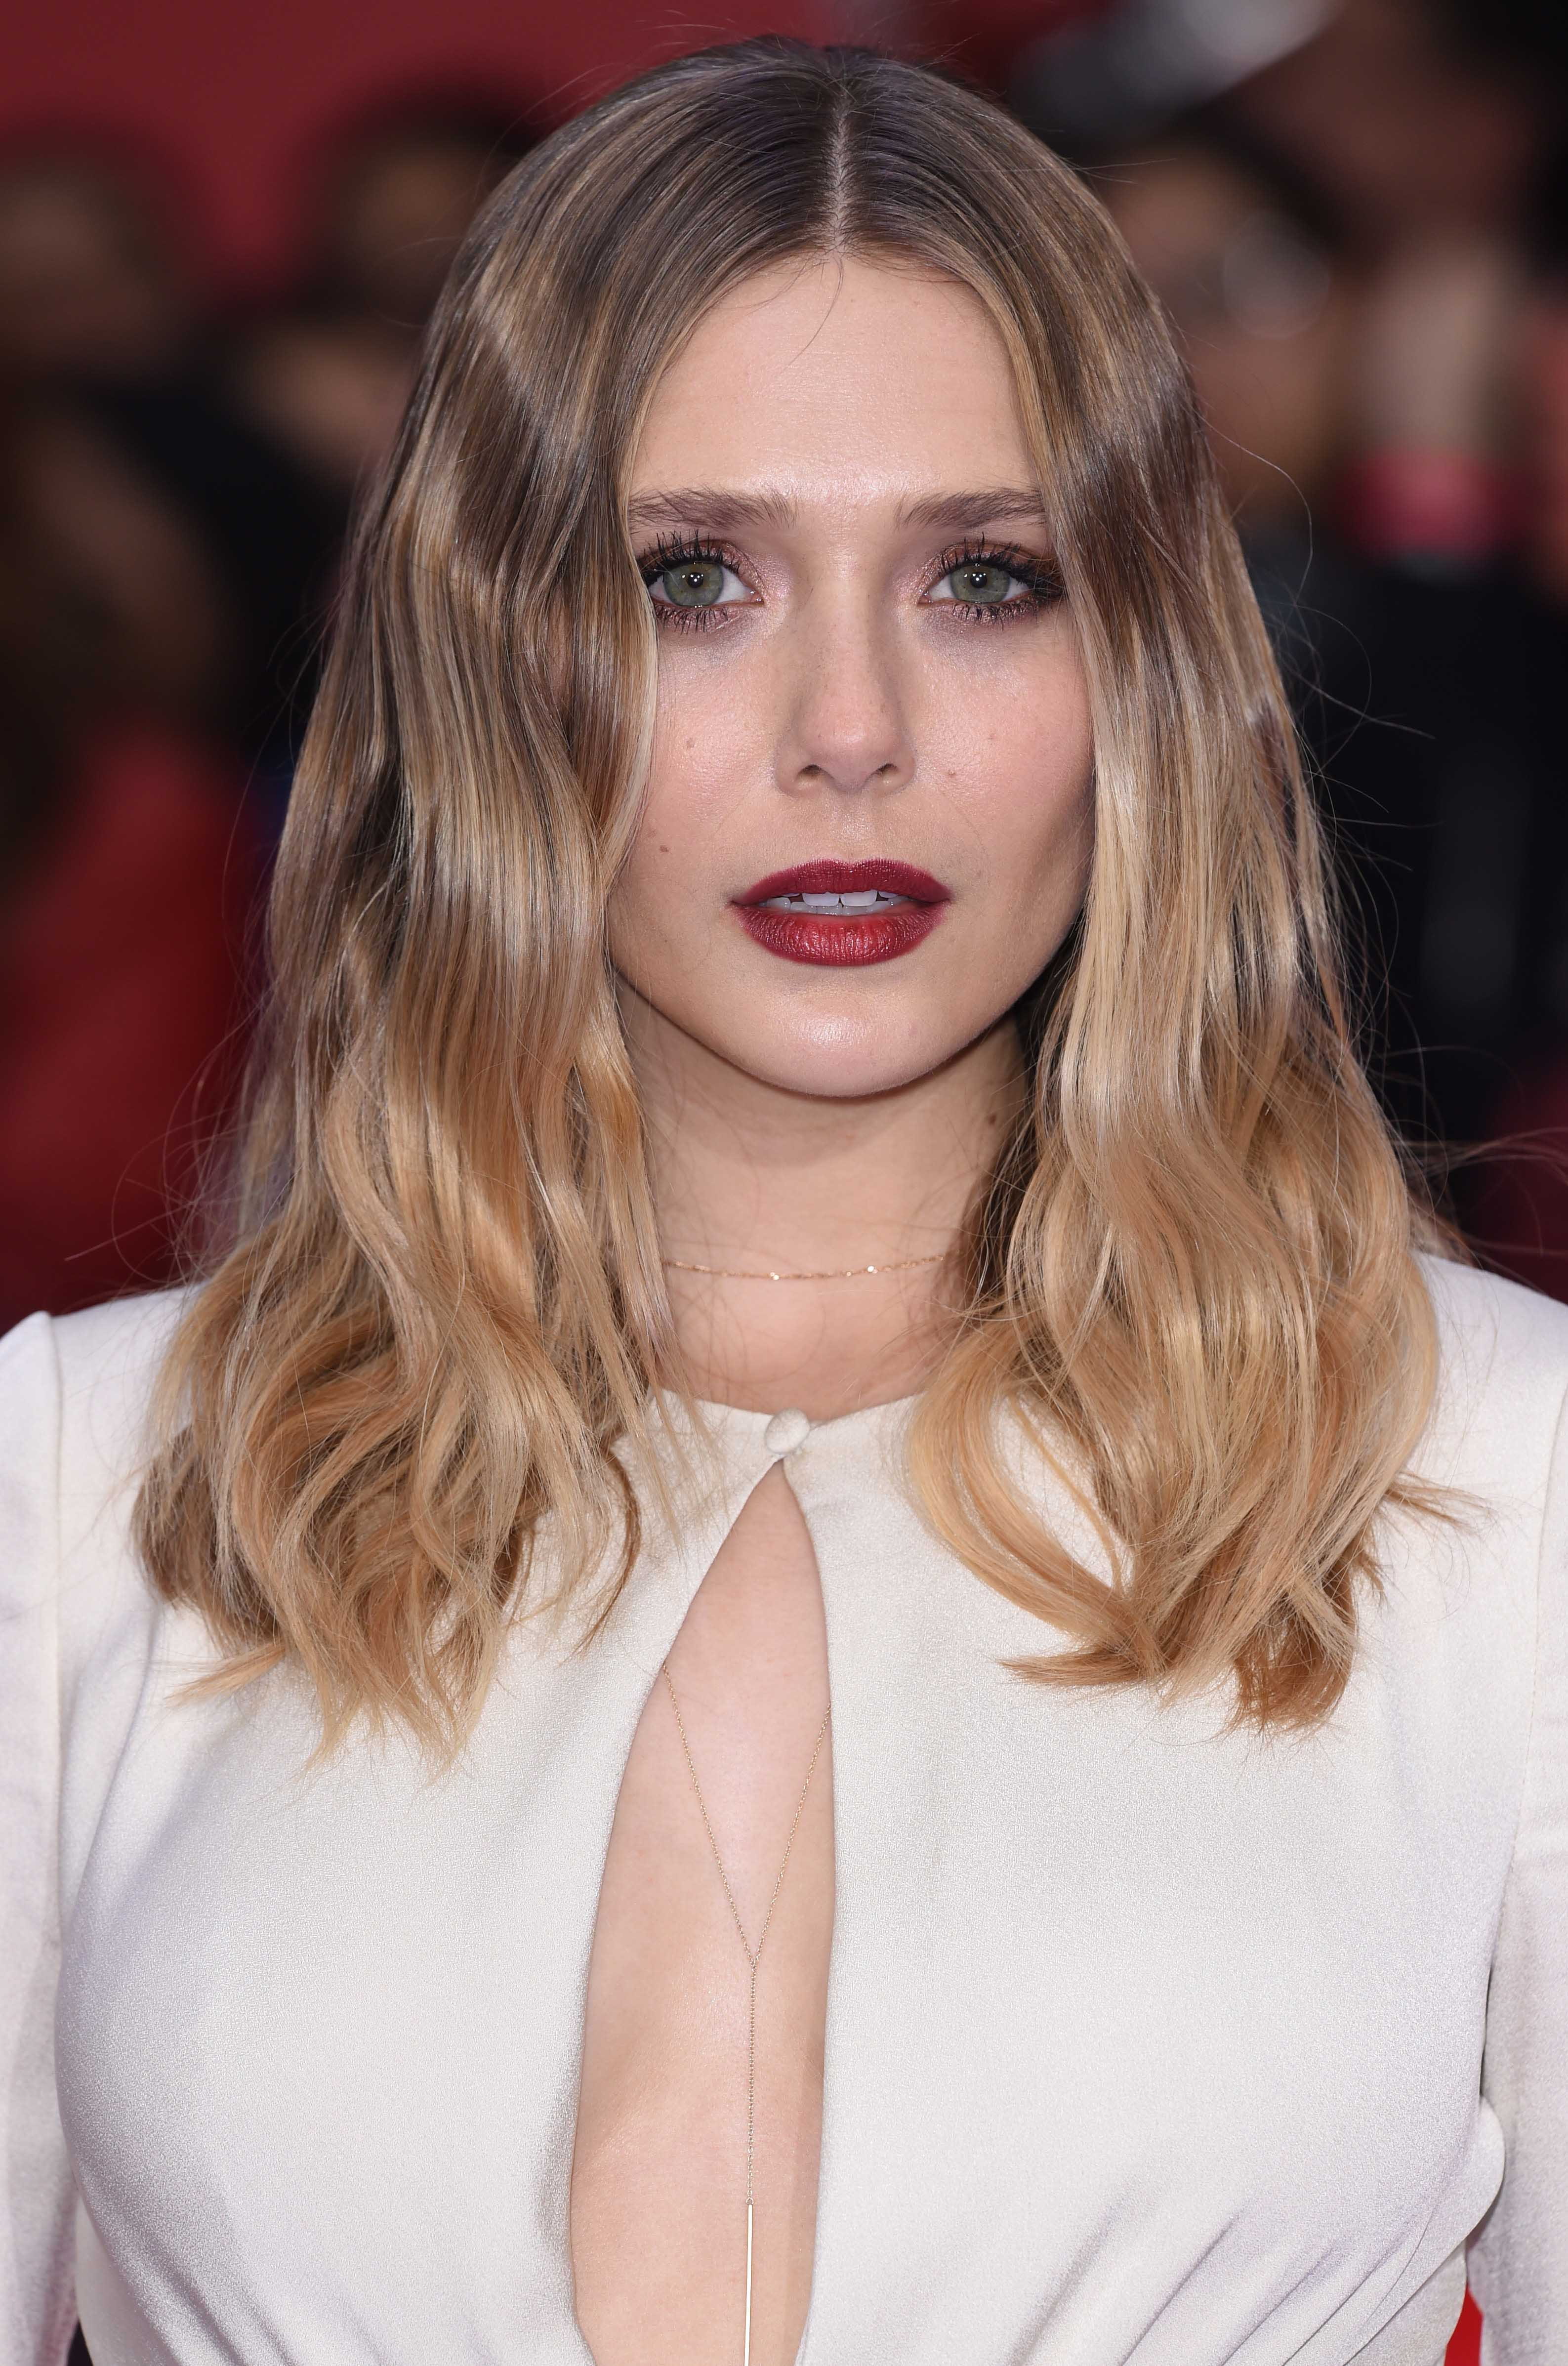 celebrity hair: All Things Hair - IMAGE - 2016 Elizabeth Olsen blunt wavy ombre hair